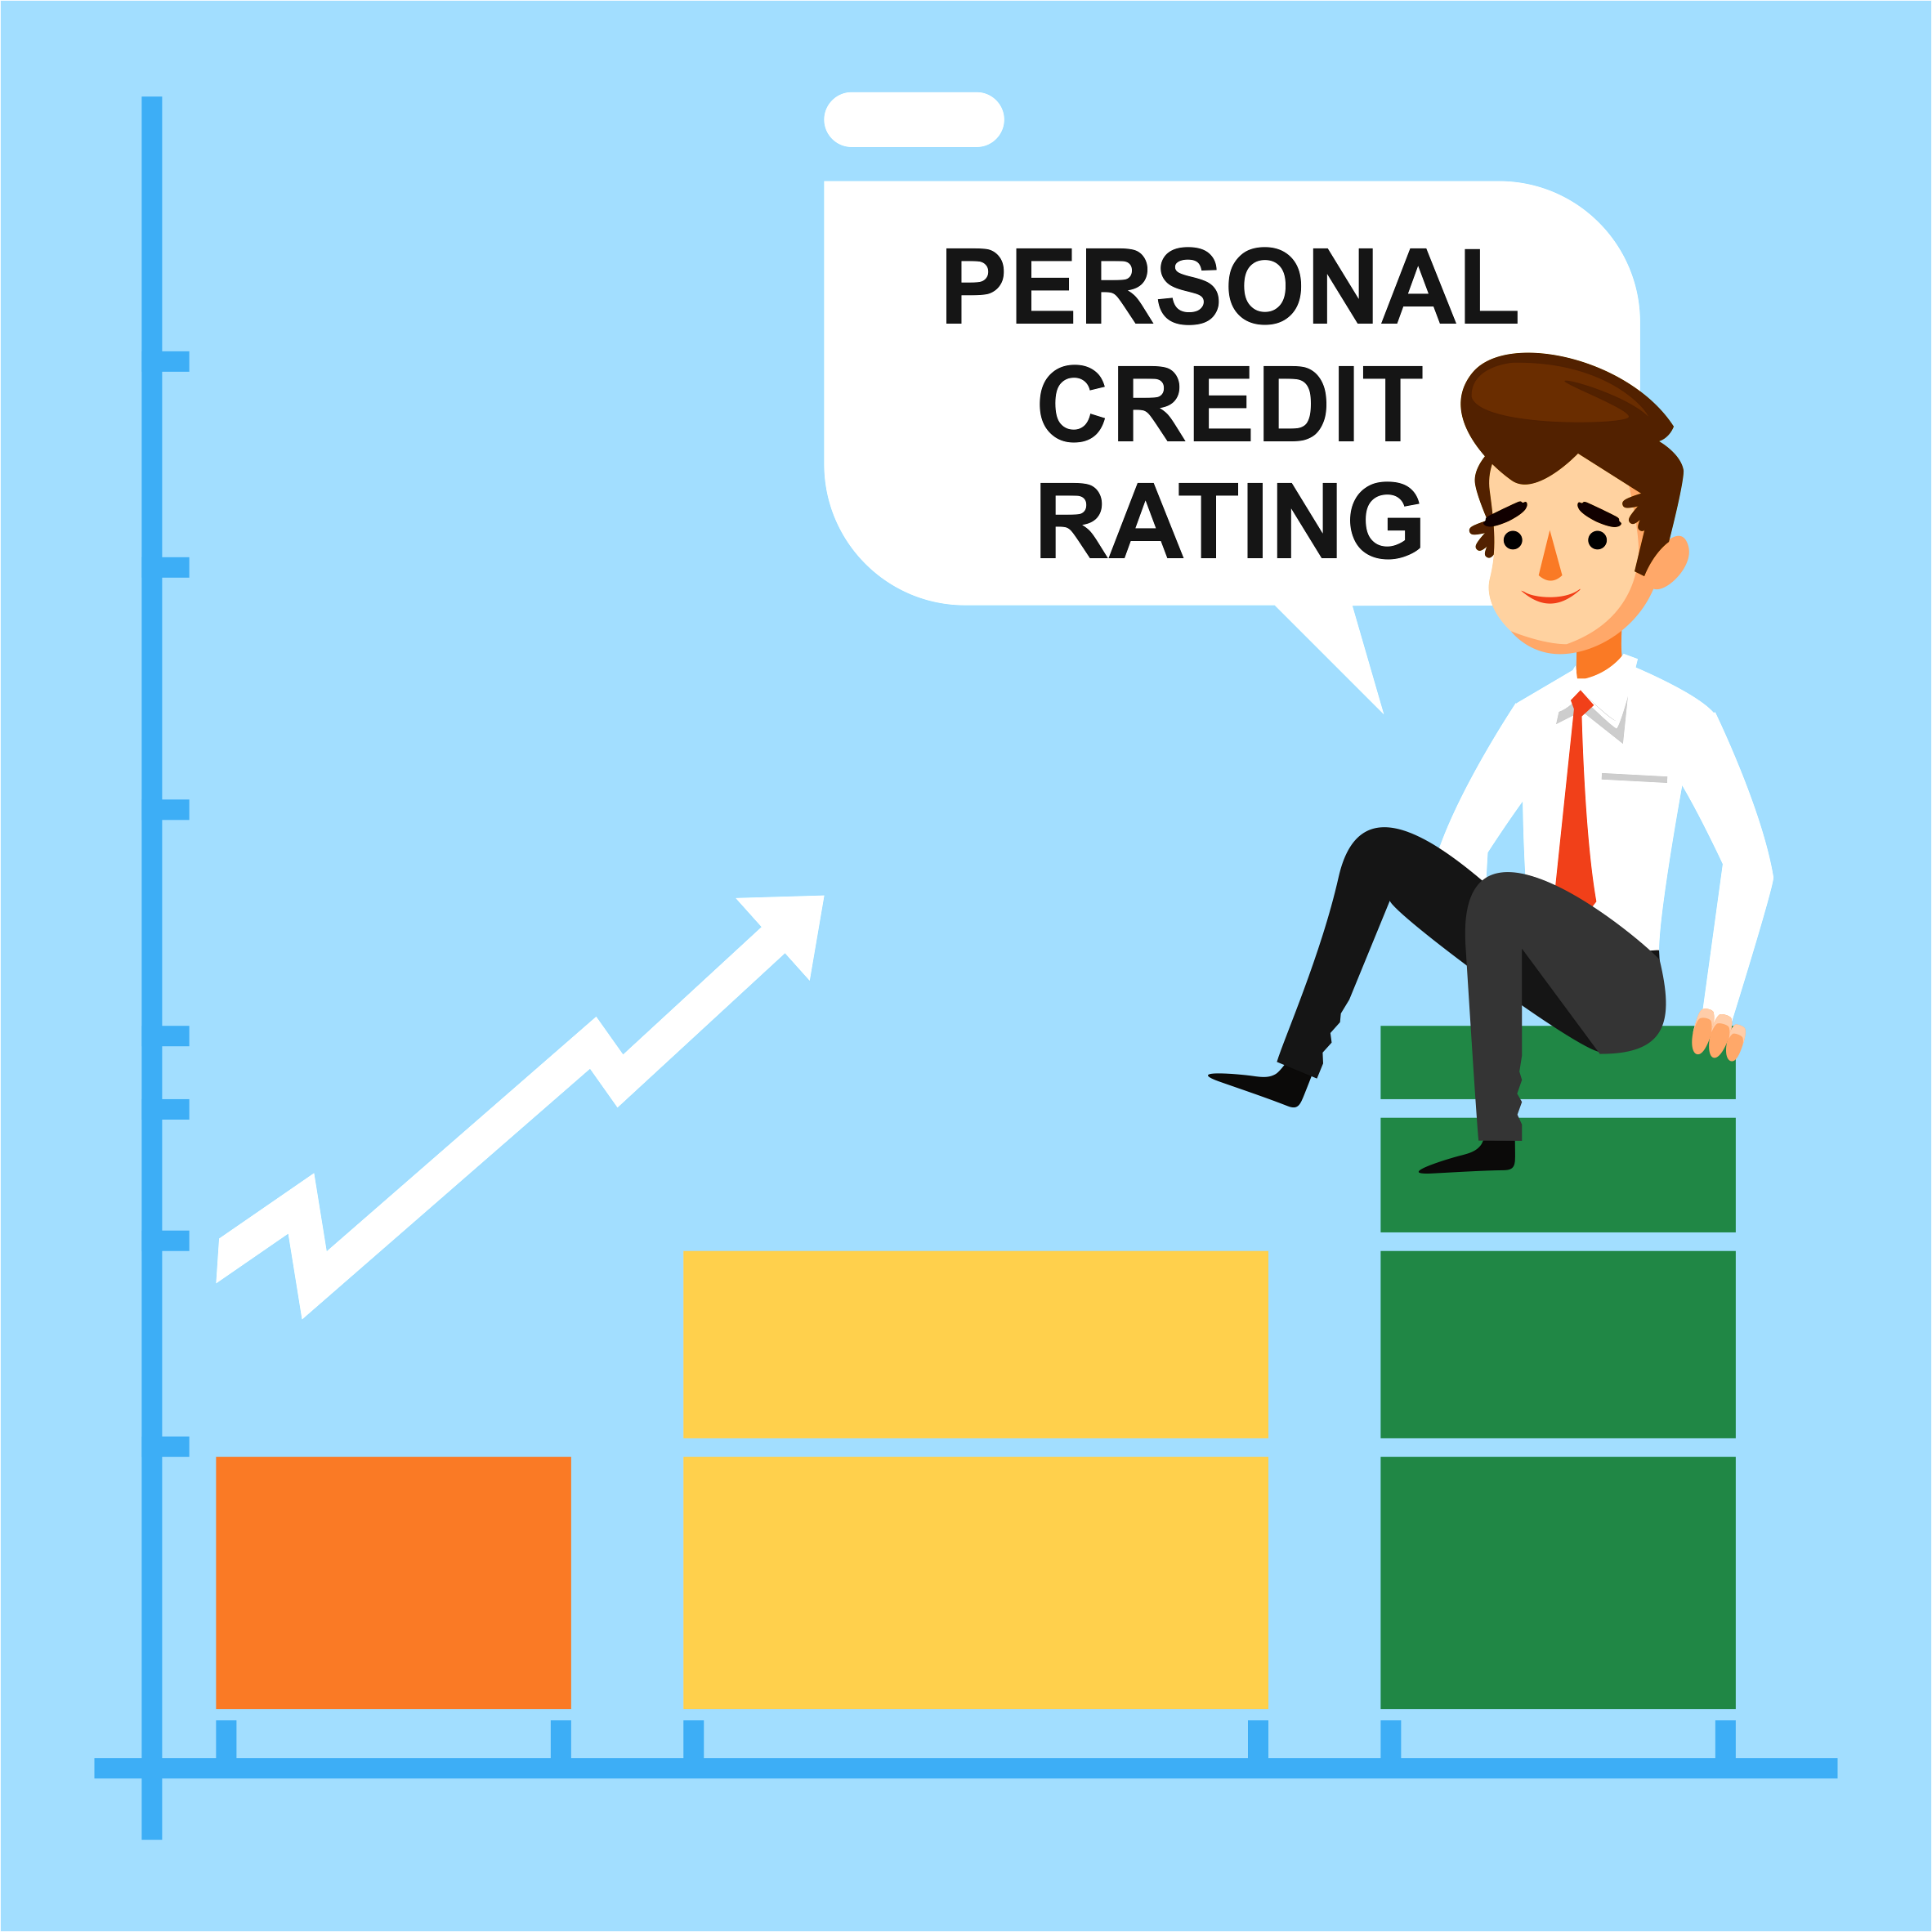 Personal Credit Rating